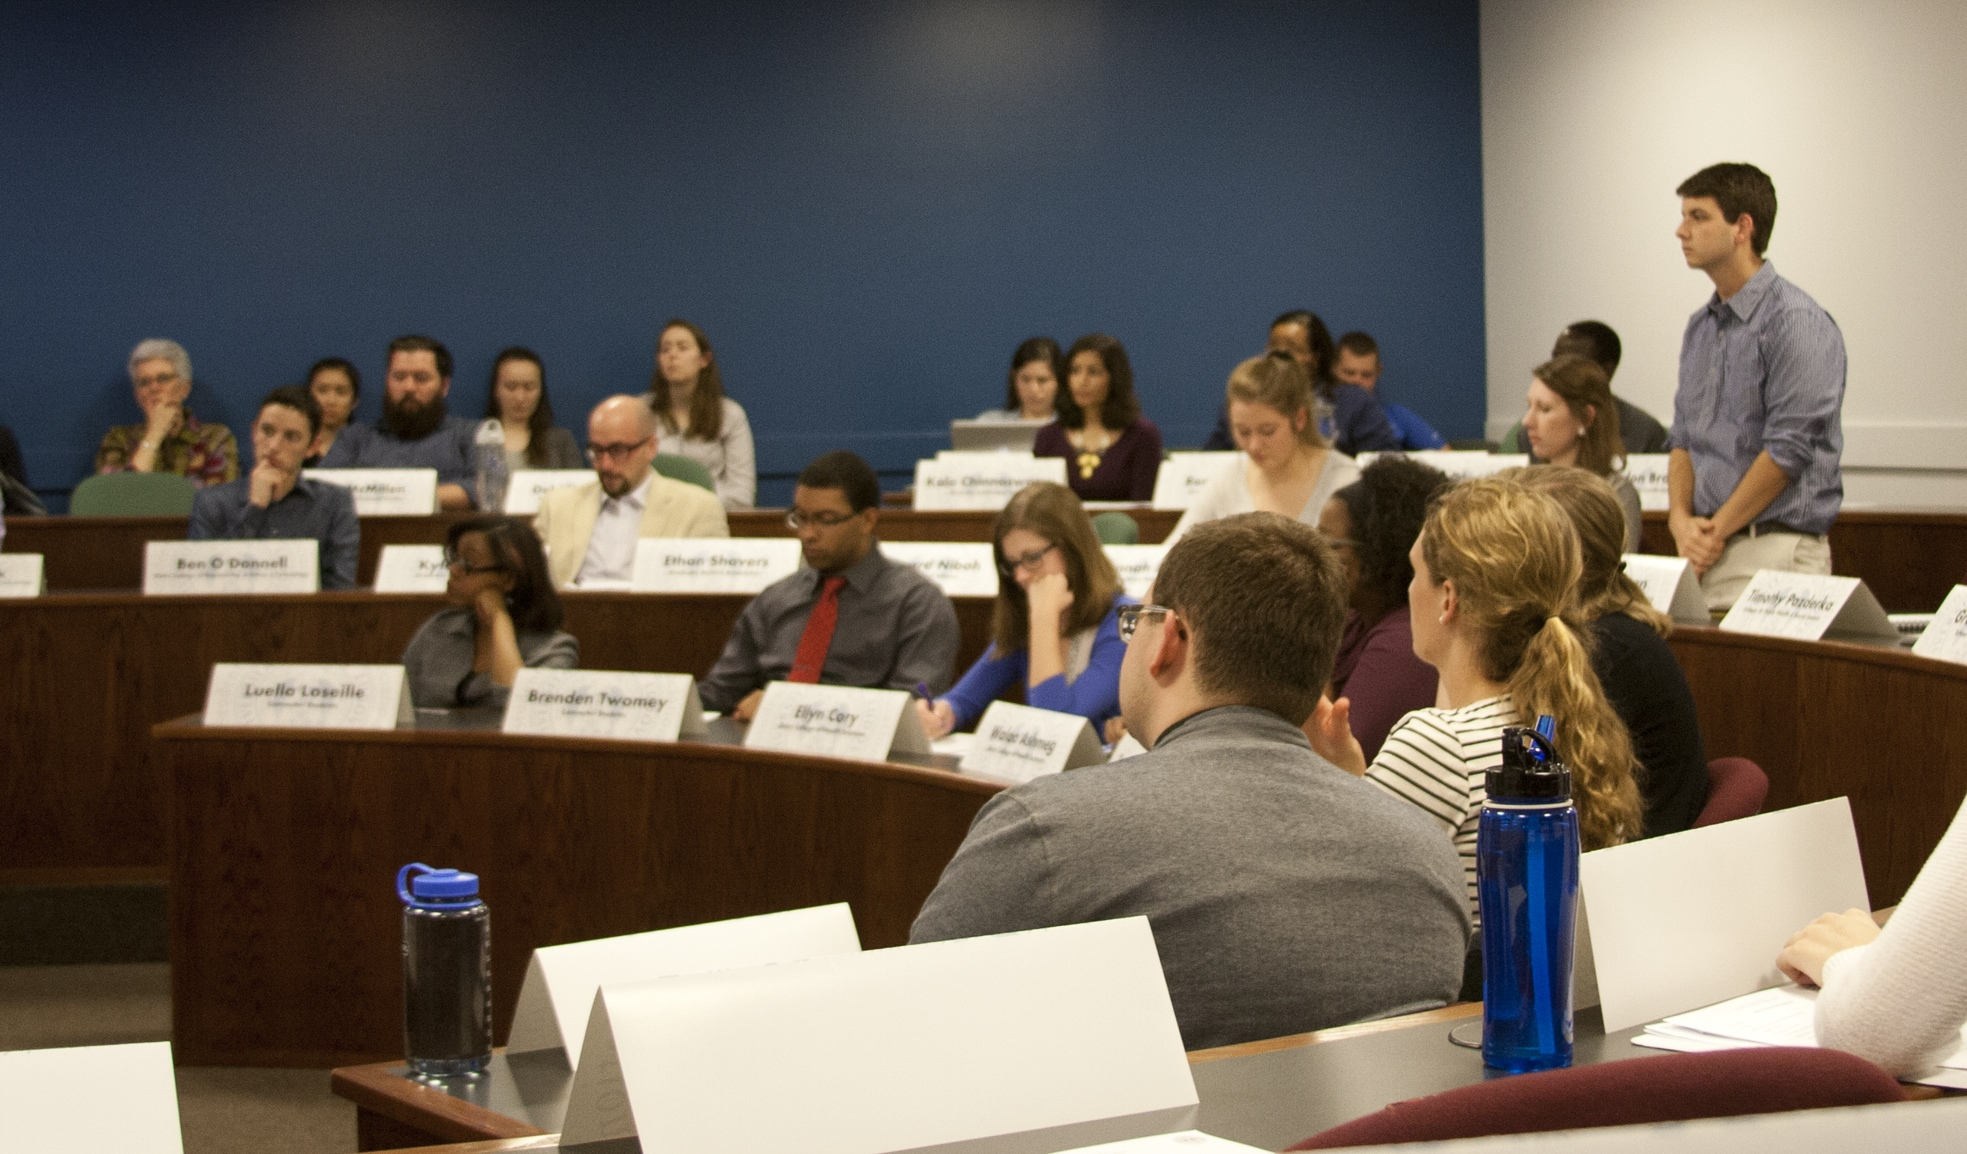 Senators seeking solutions: SGA senator Mike Degnan directs a question to Sue Chawszczewski, the Director of Campus Ministry at SLU. Chawszczewski outlined many Campus Ministry intiatives, including new mission trips. Paul Brunkhorst / Associate News Editor